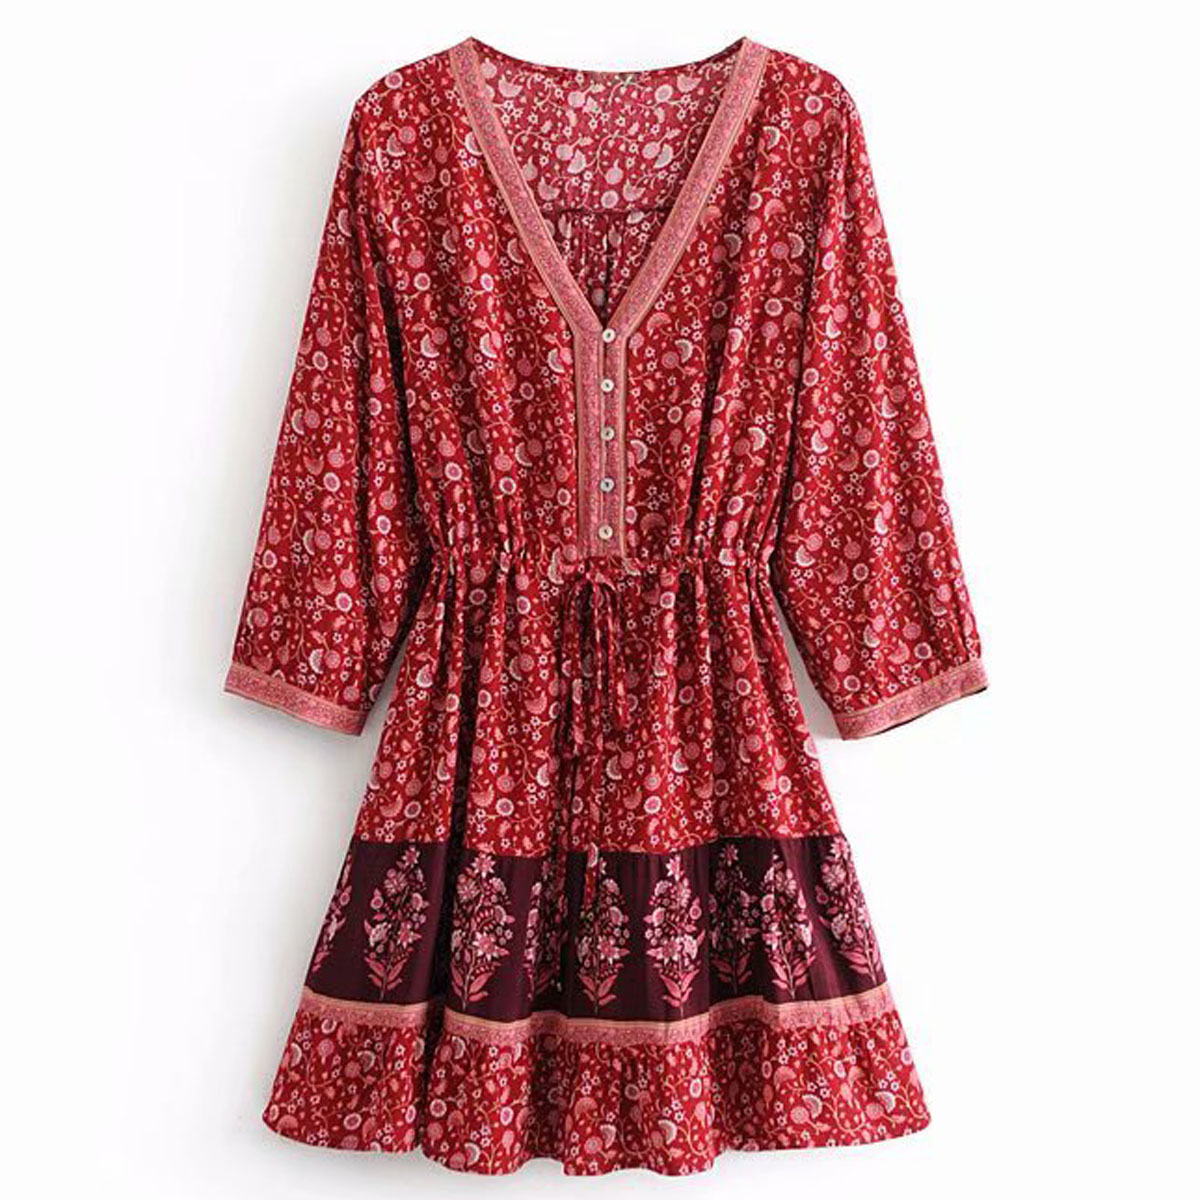 Jastie <font><b>Crimson</b></font> Print Mini <font><b>Dress</b></font> Button-down V-neck Women <font><b>Dresses</b></font> A-line Hem 3/4 Sleeve Spring Autumn <font><b>Dress</b></font> Boho Beach <font><b>Dresses</b></font>